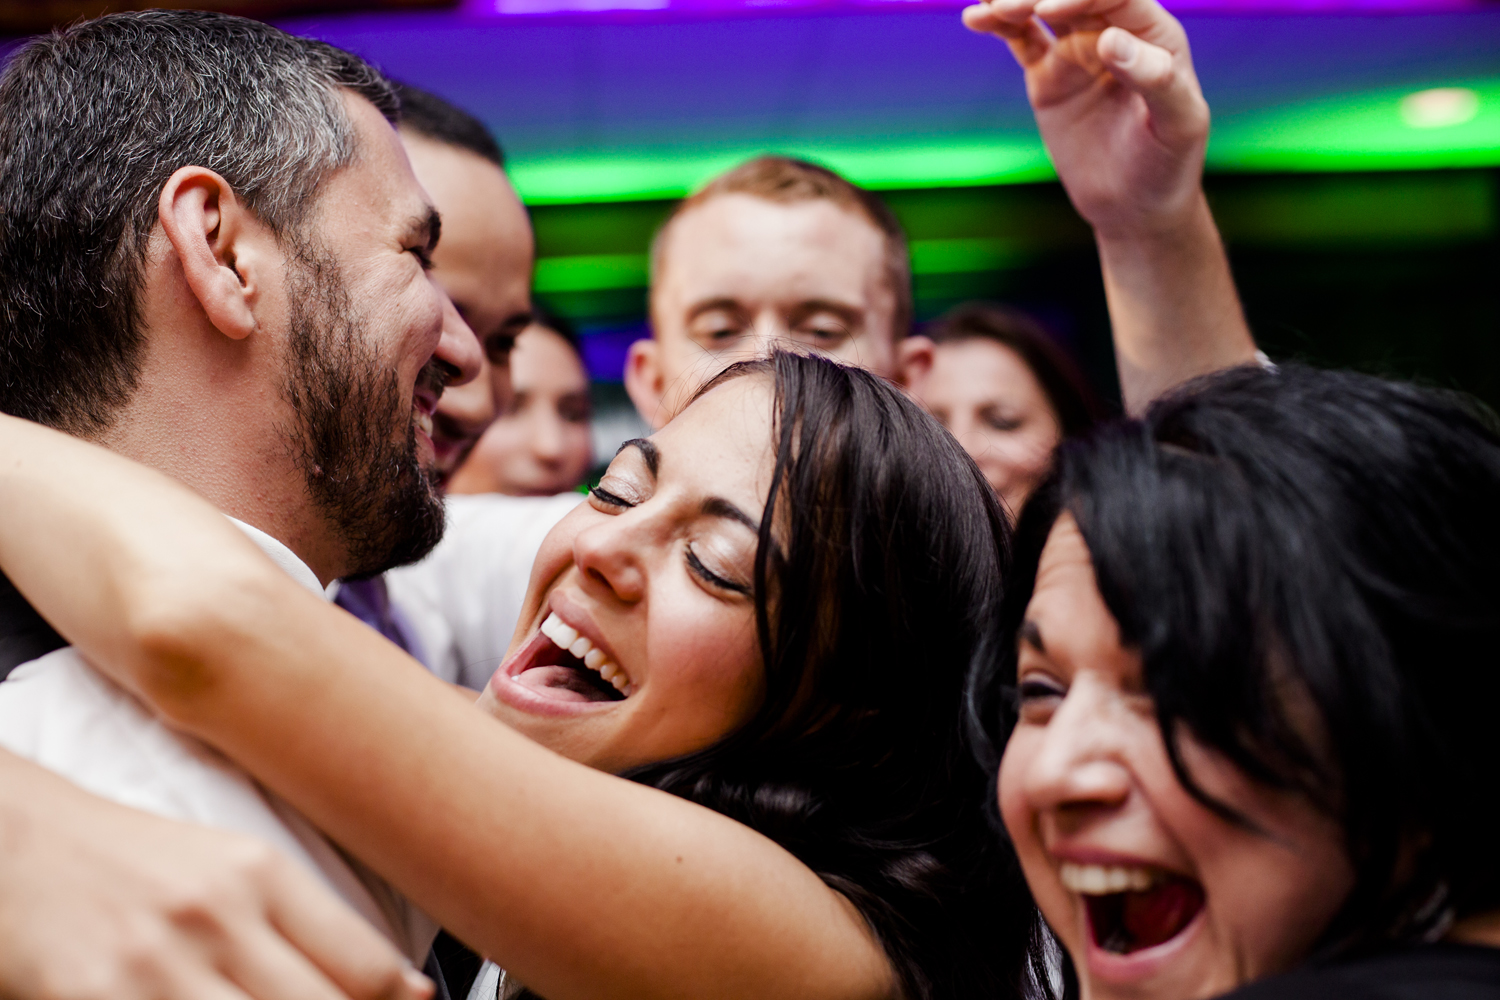 bride and groom share a last dance with friends at a wedding reception